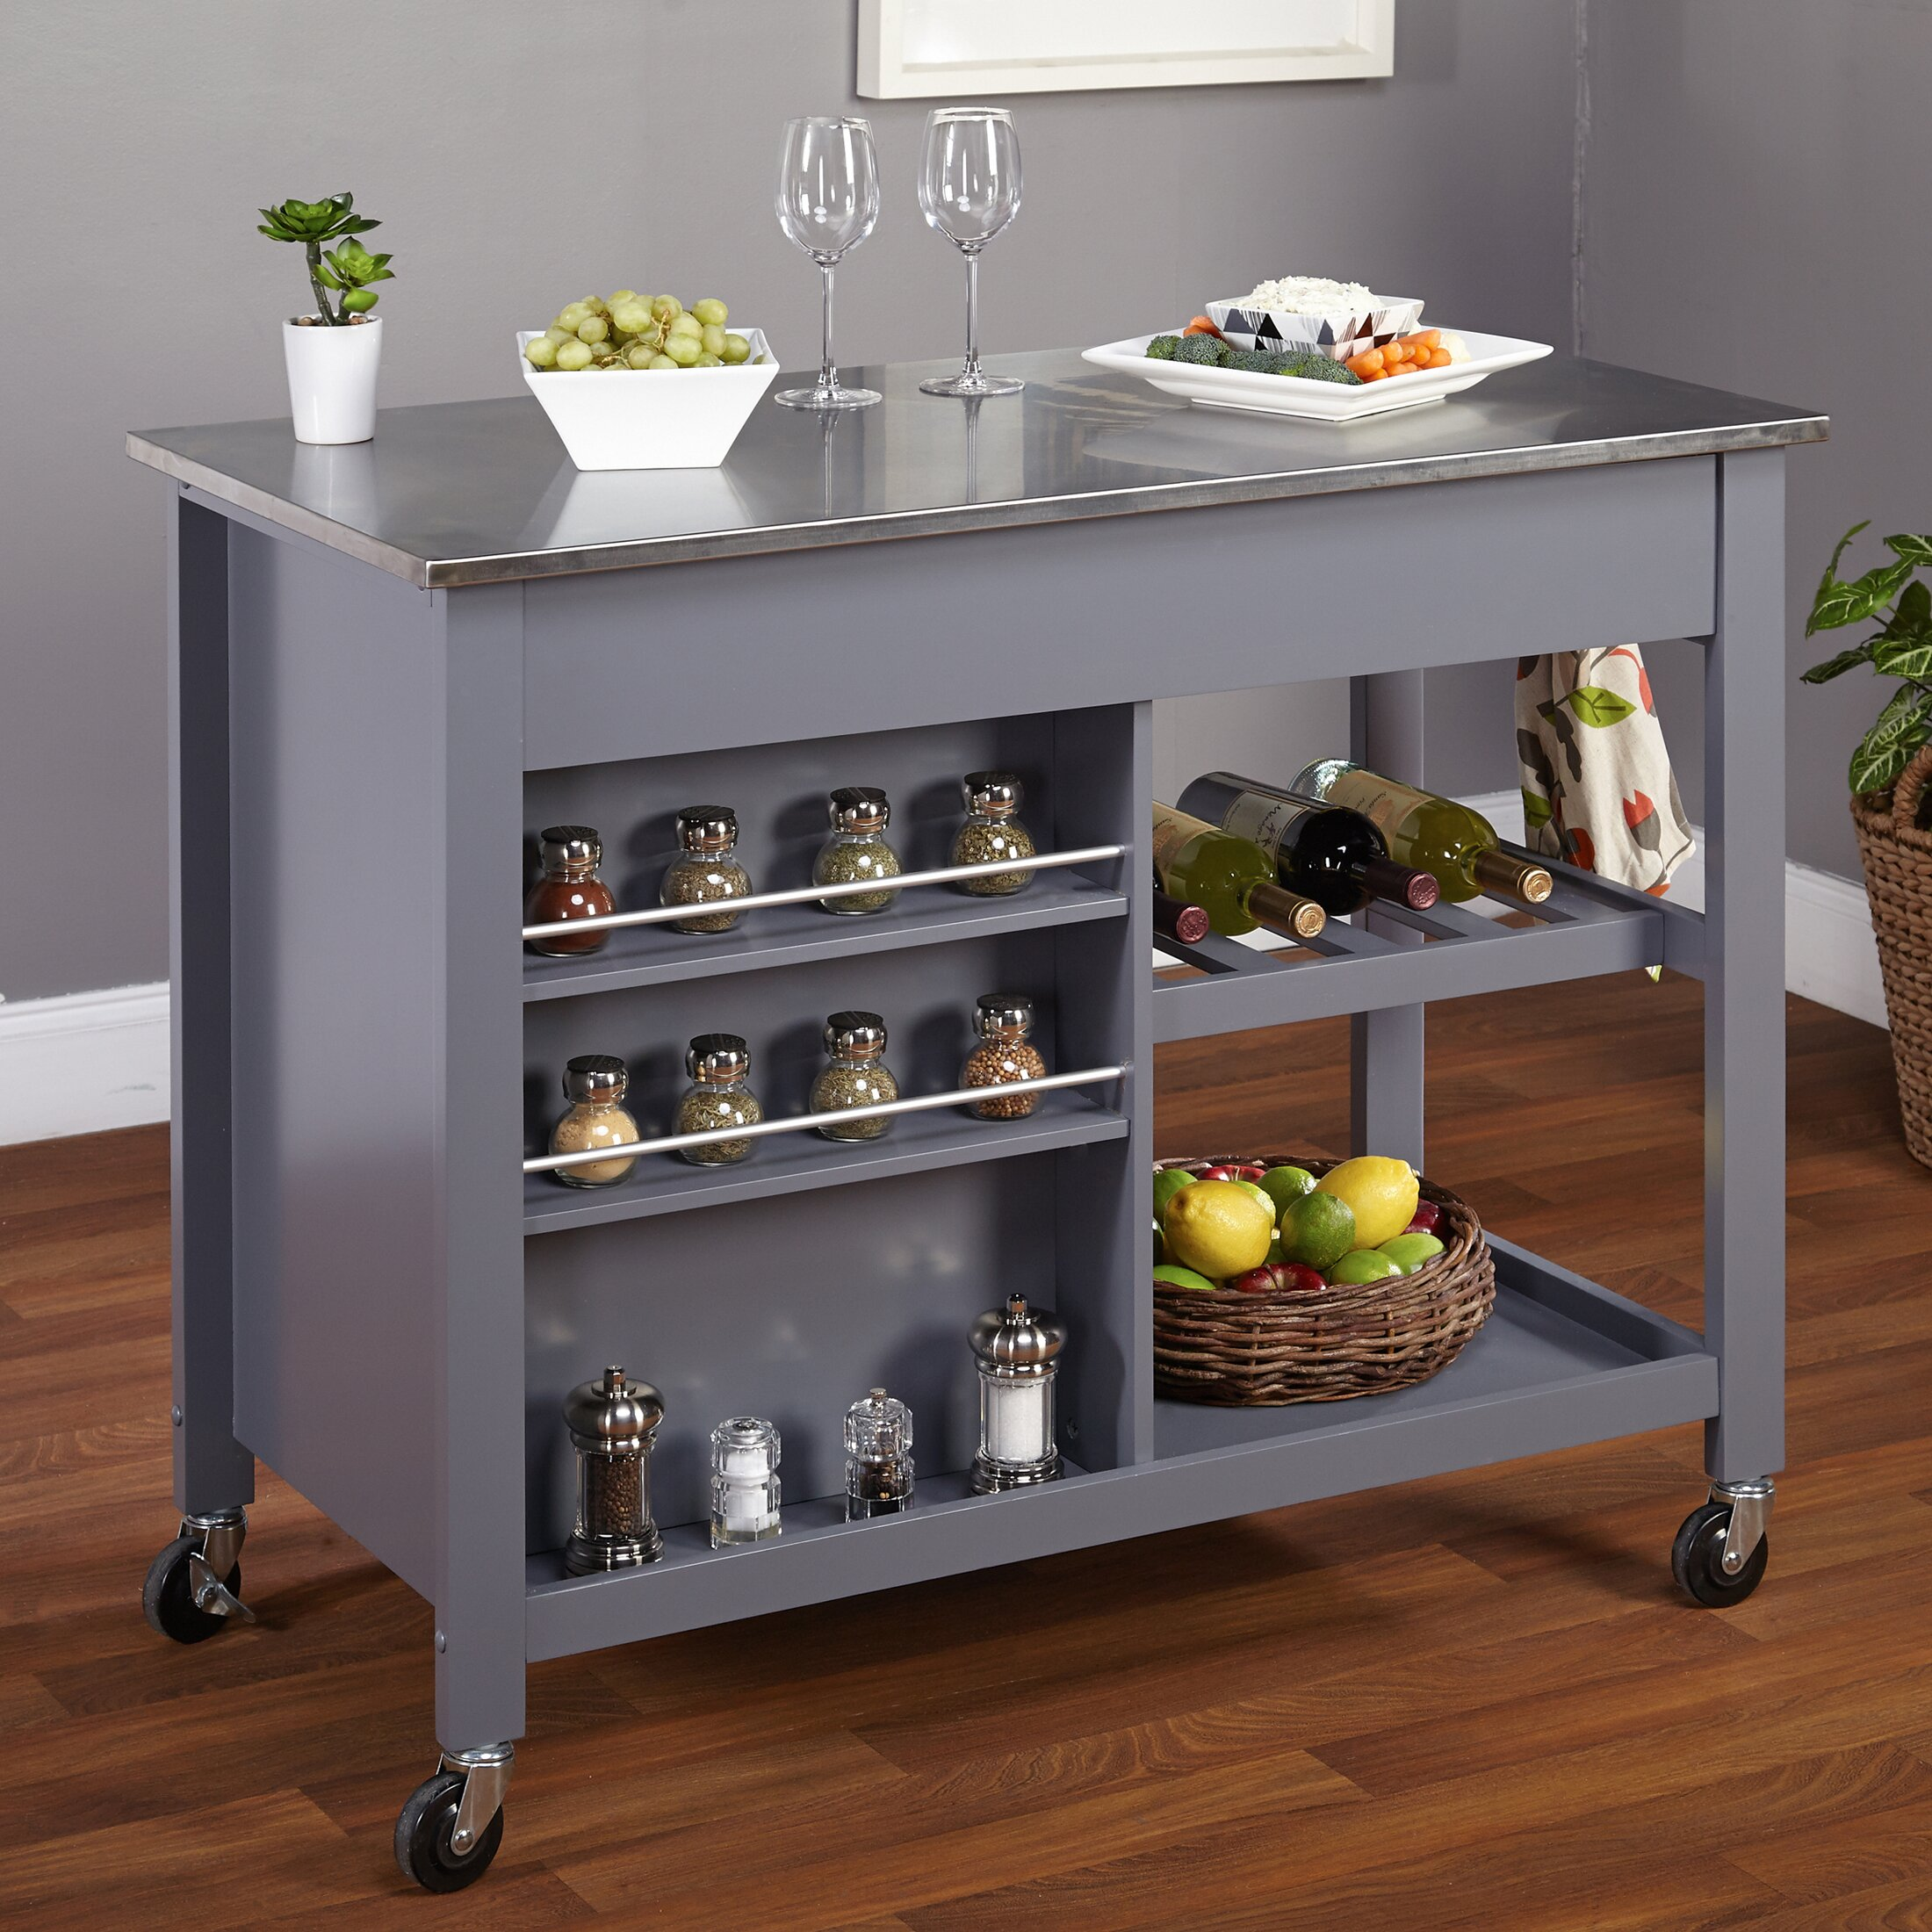 Tms Columbus Kitchen Island With Stainless Steel Top Reviews Wayfair